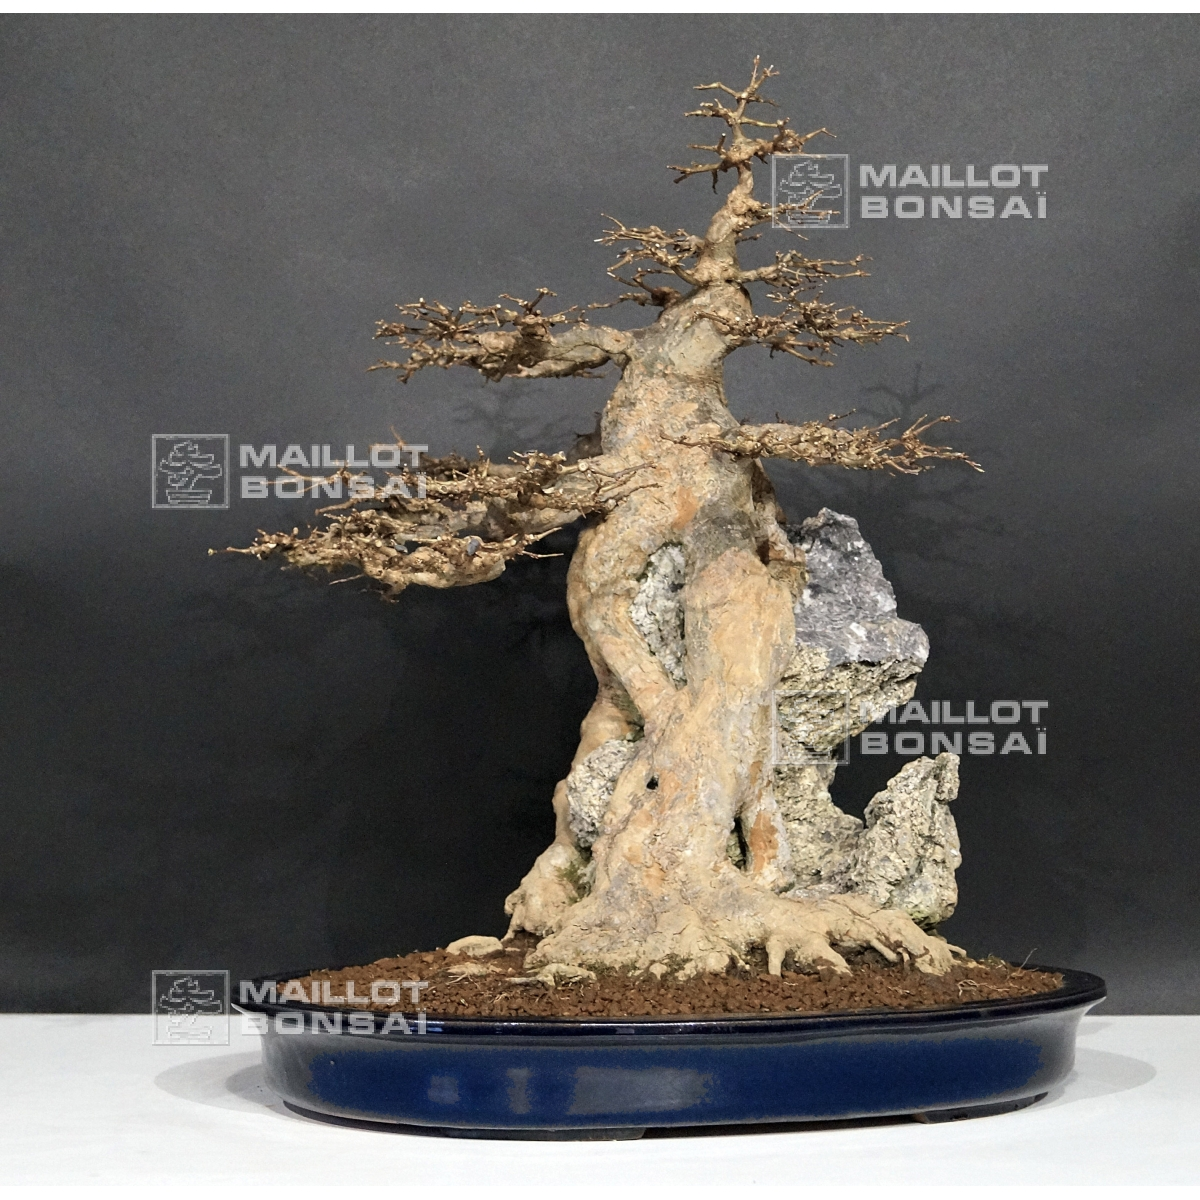 Bonsai Masterpieces Acer Buergerianum Bonsai Ref 02030162 From